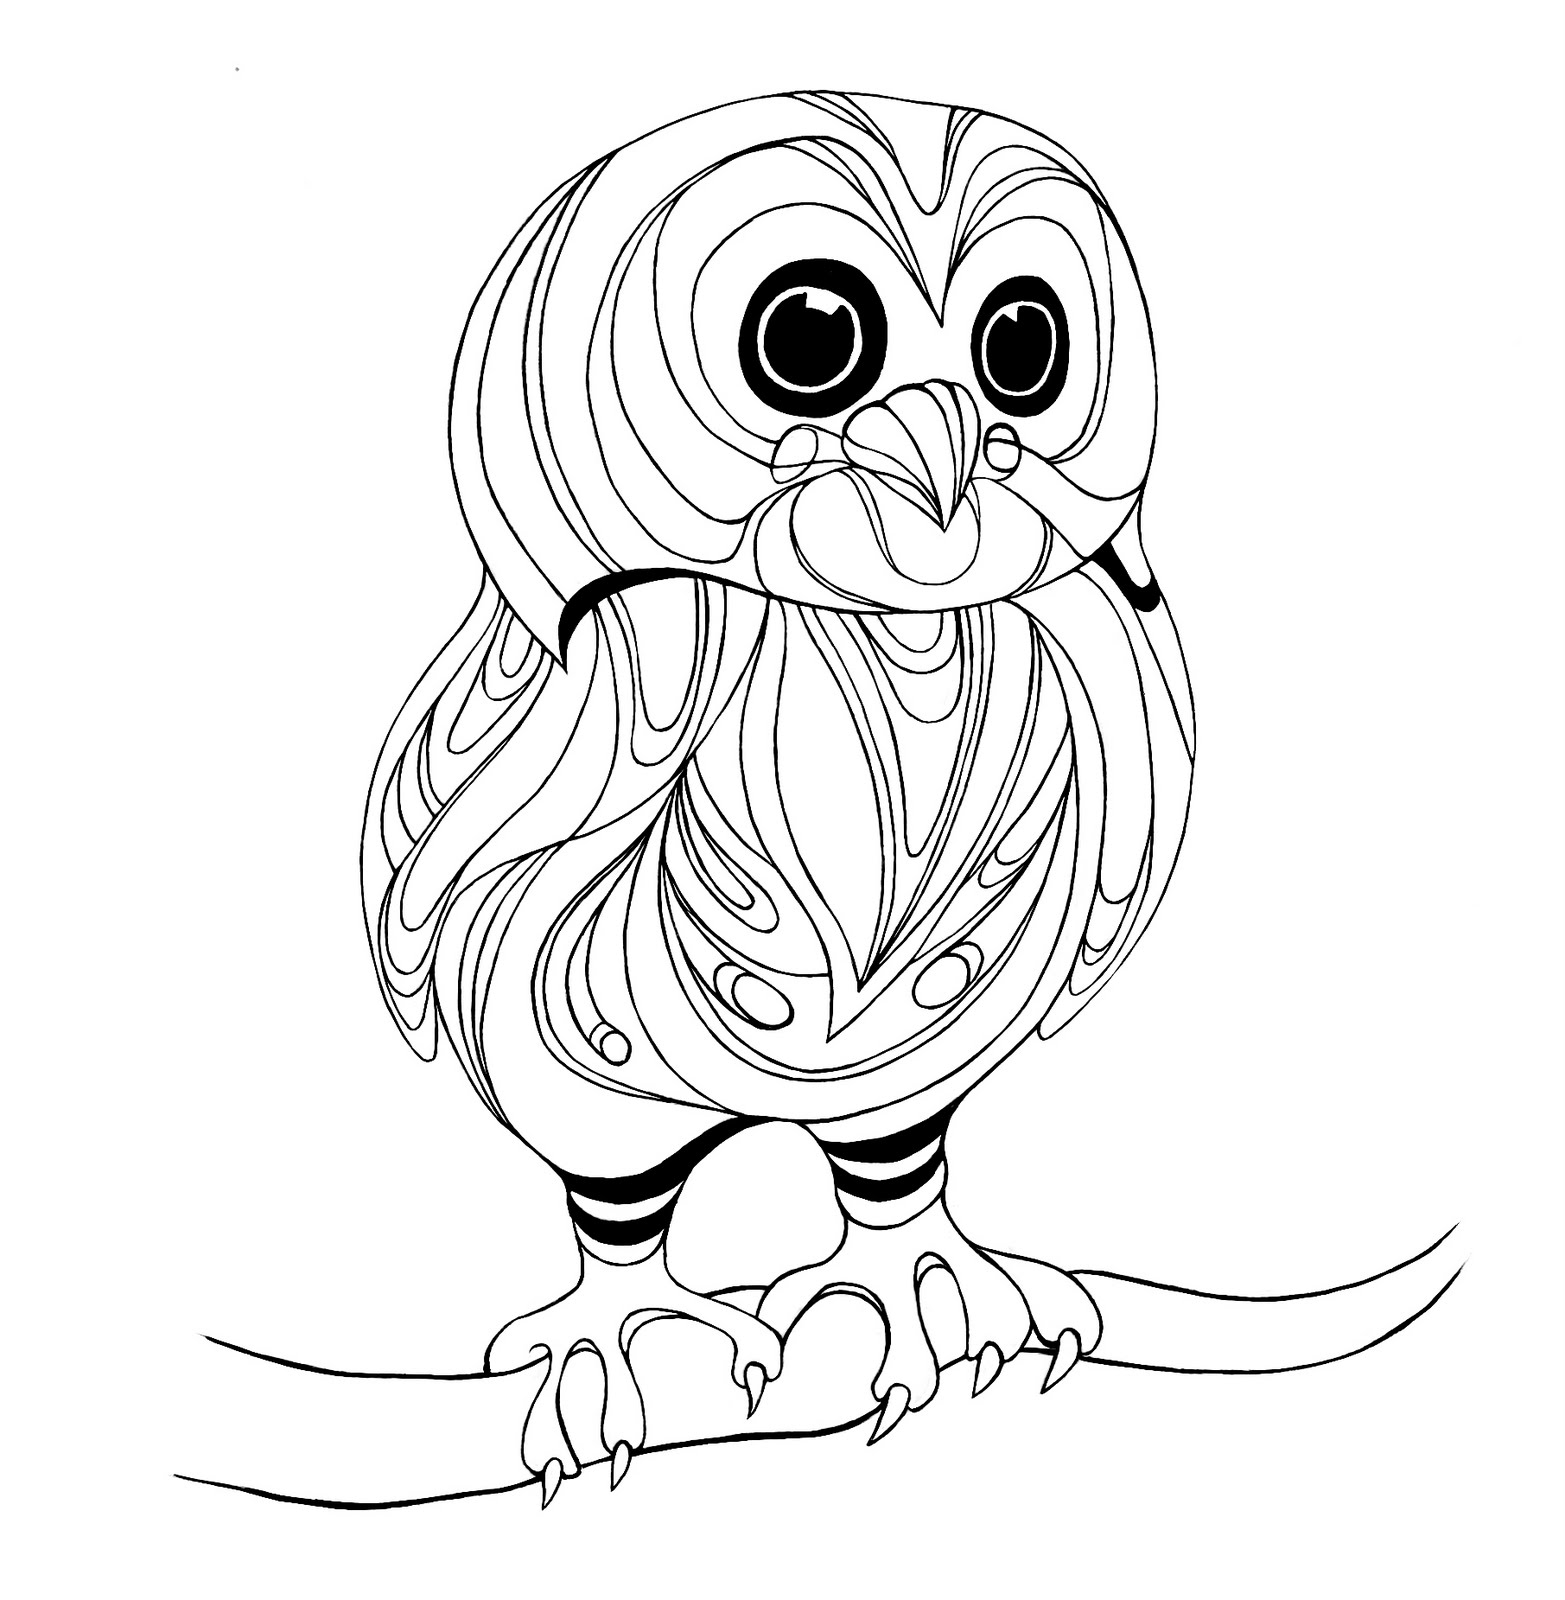 owl coloring pics colleen keith art illustration blog woodland creatures pics coloring owl